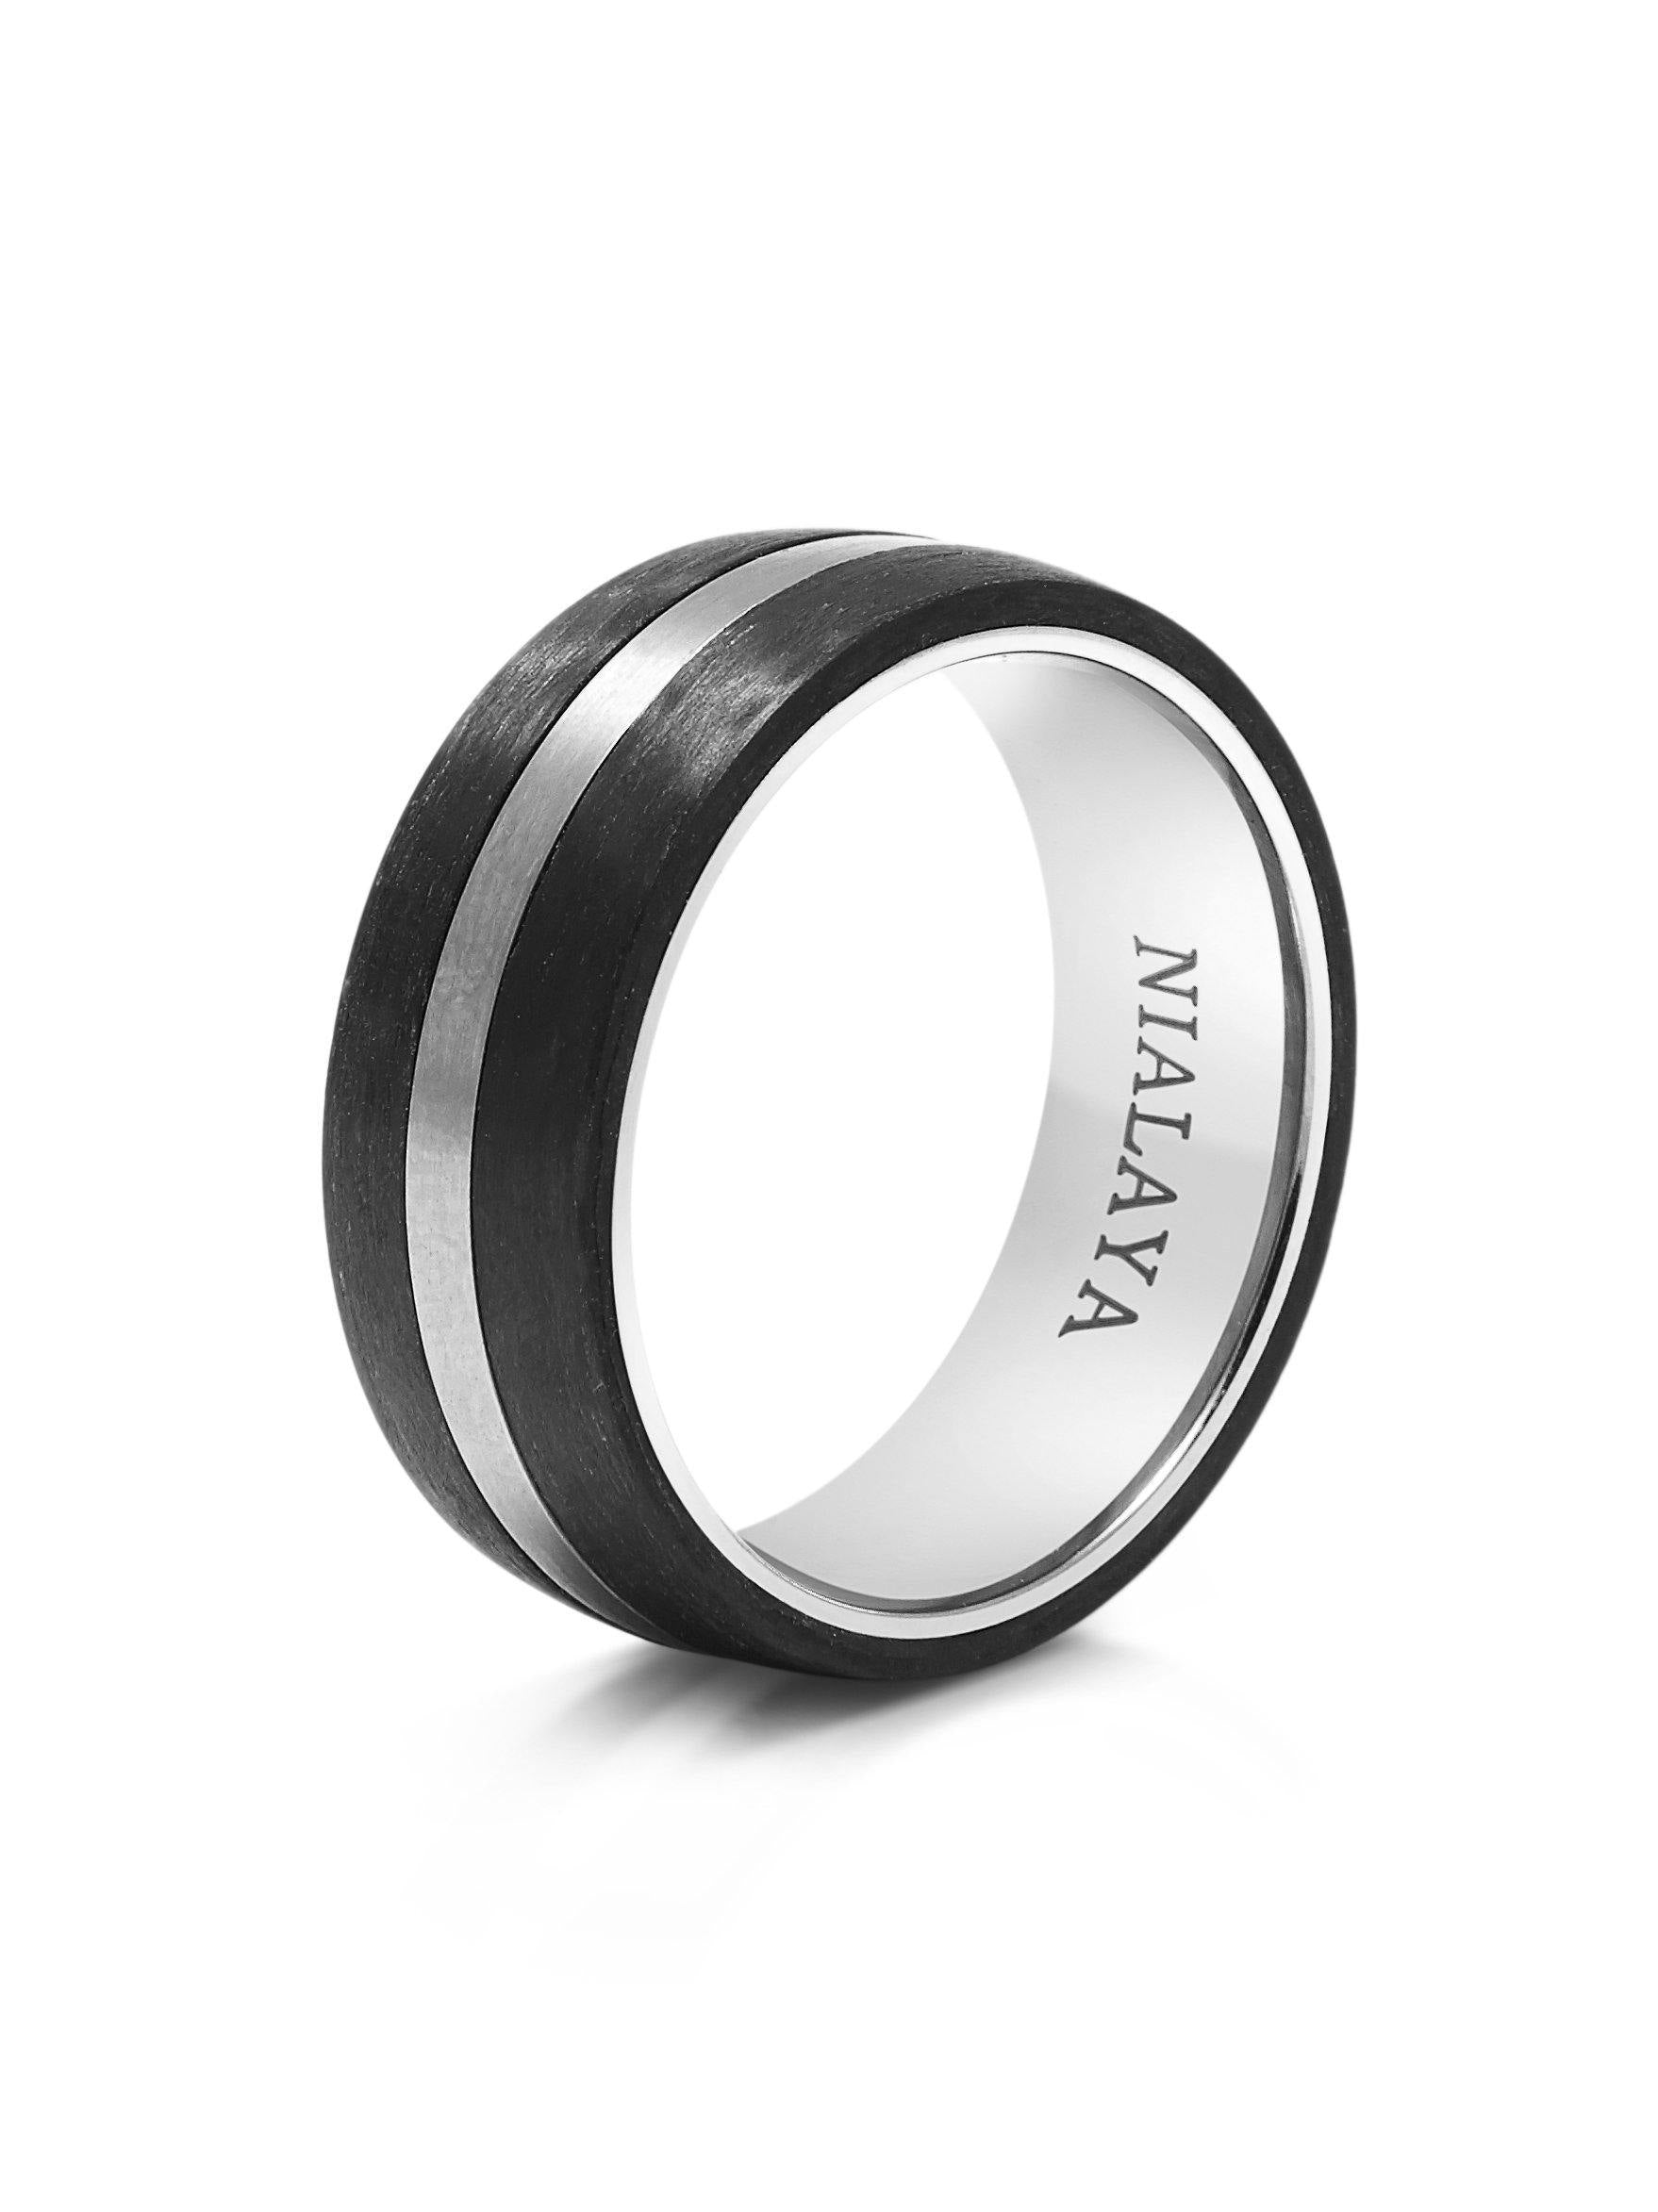 fiber wedding soha products inlaid carbon black ceramic rings titanium band bands onyx ring with inlay